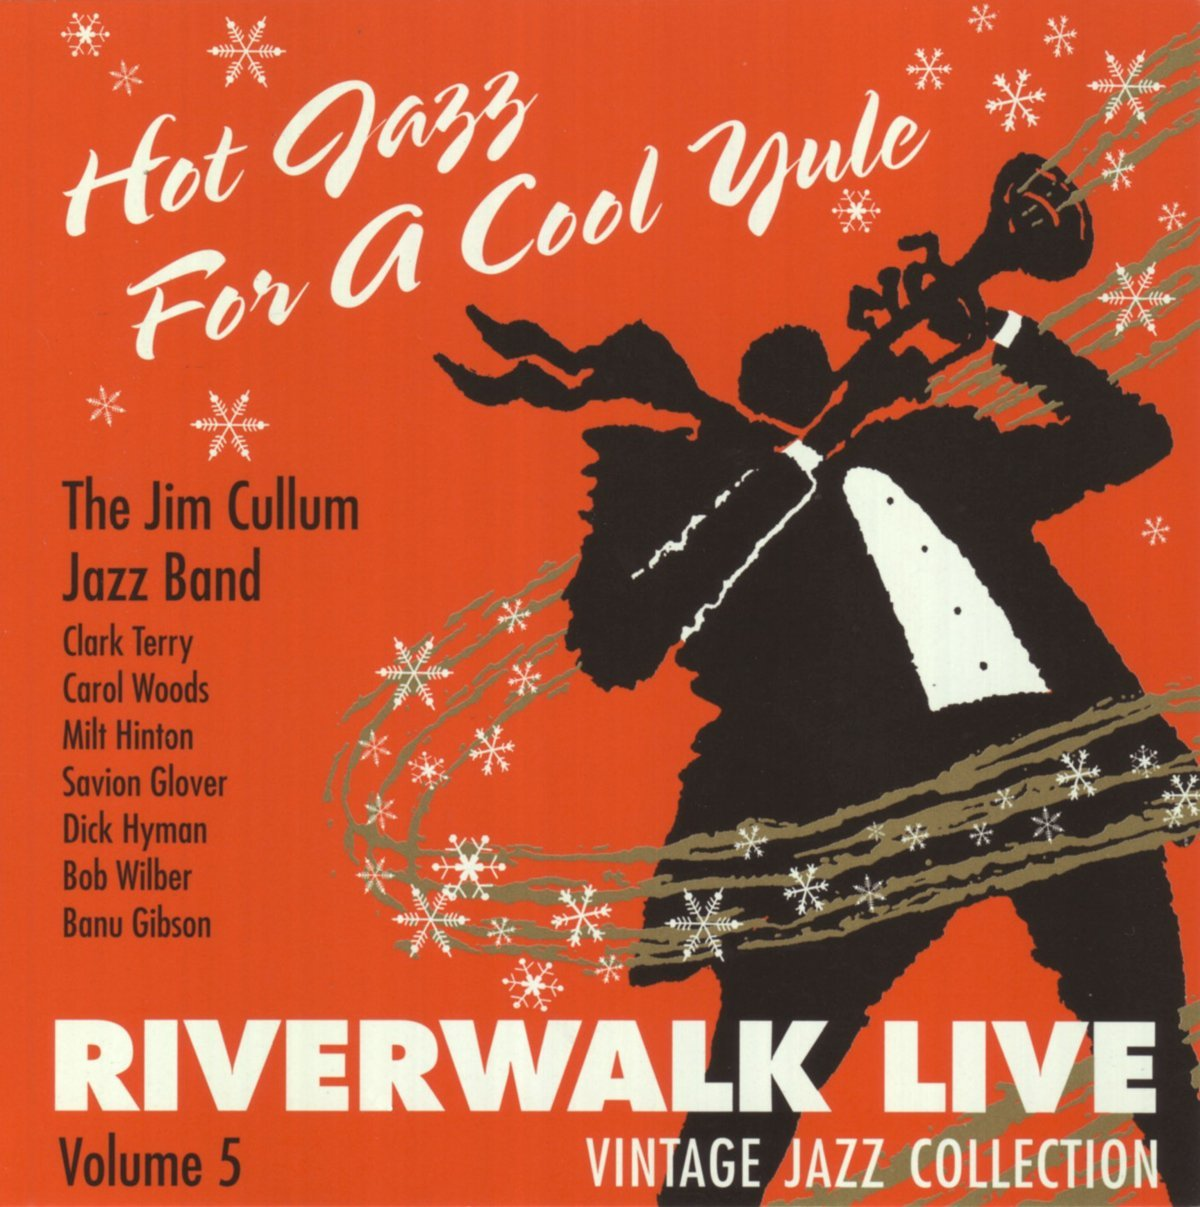 Hot Jazz For A Cool Yule: Riverwalk Live, Volume 5 by Riverwalk